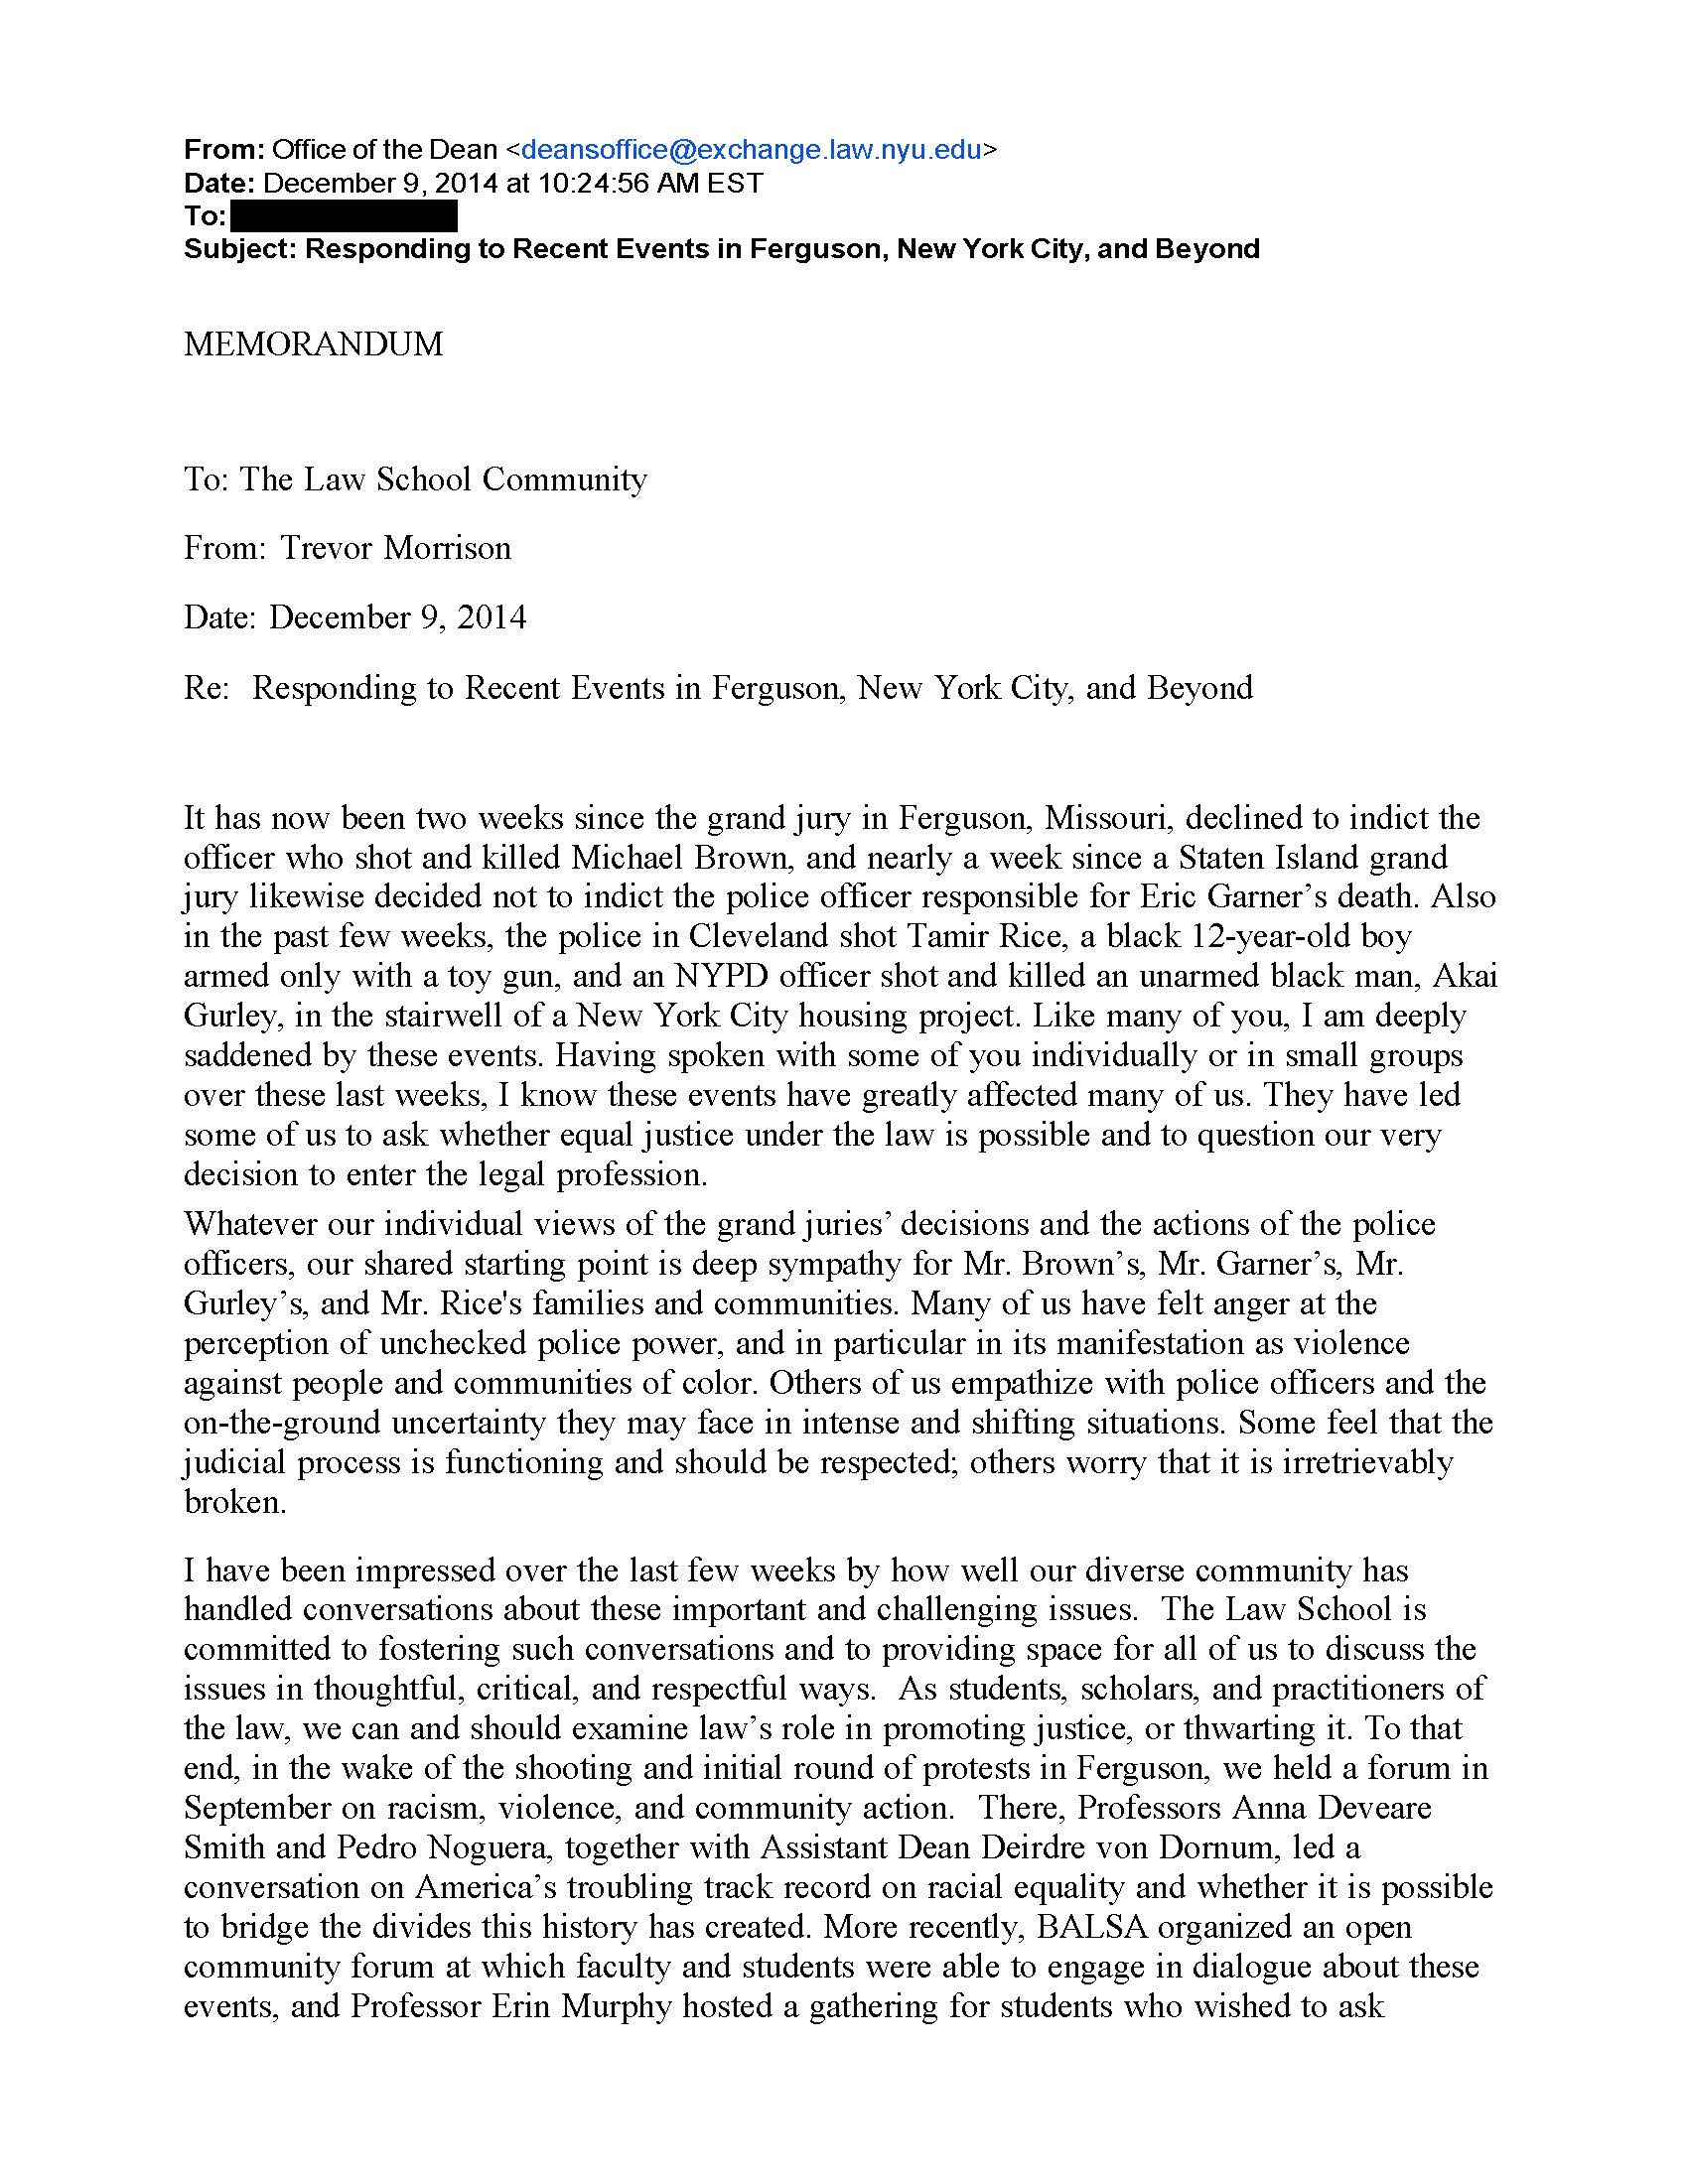 005 Nyu Response 14 Page 1 Essay Example Why Exceptional Supplement Examples College Confidential Full